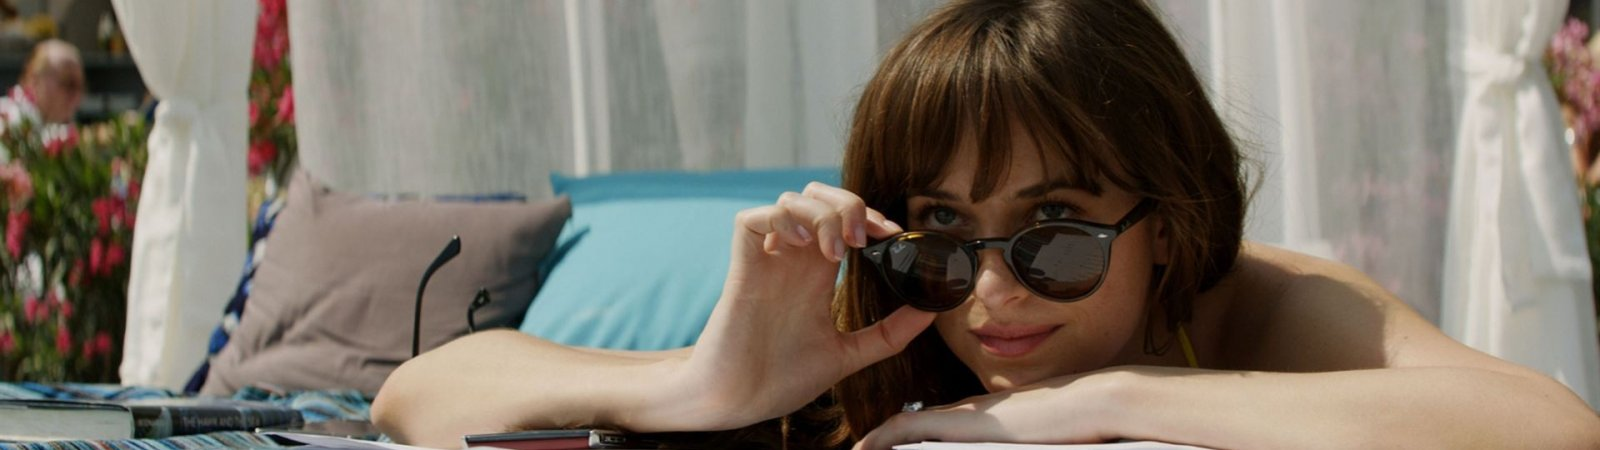 Photo dernier film Dakota Johnson